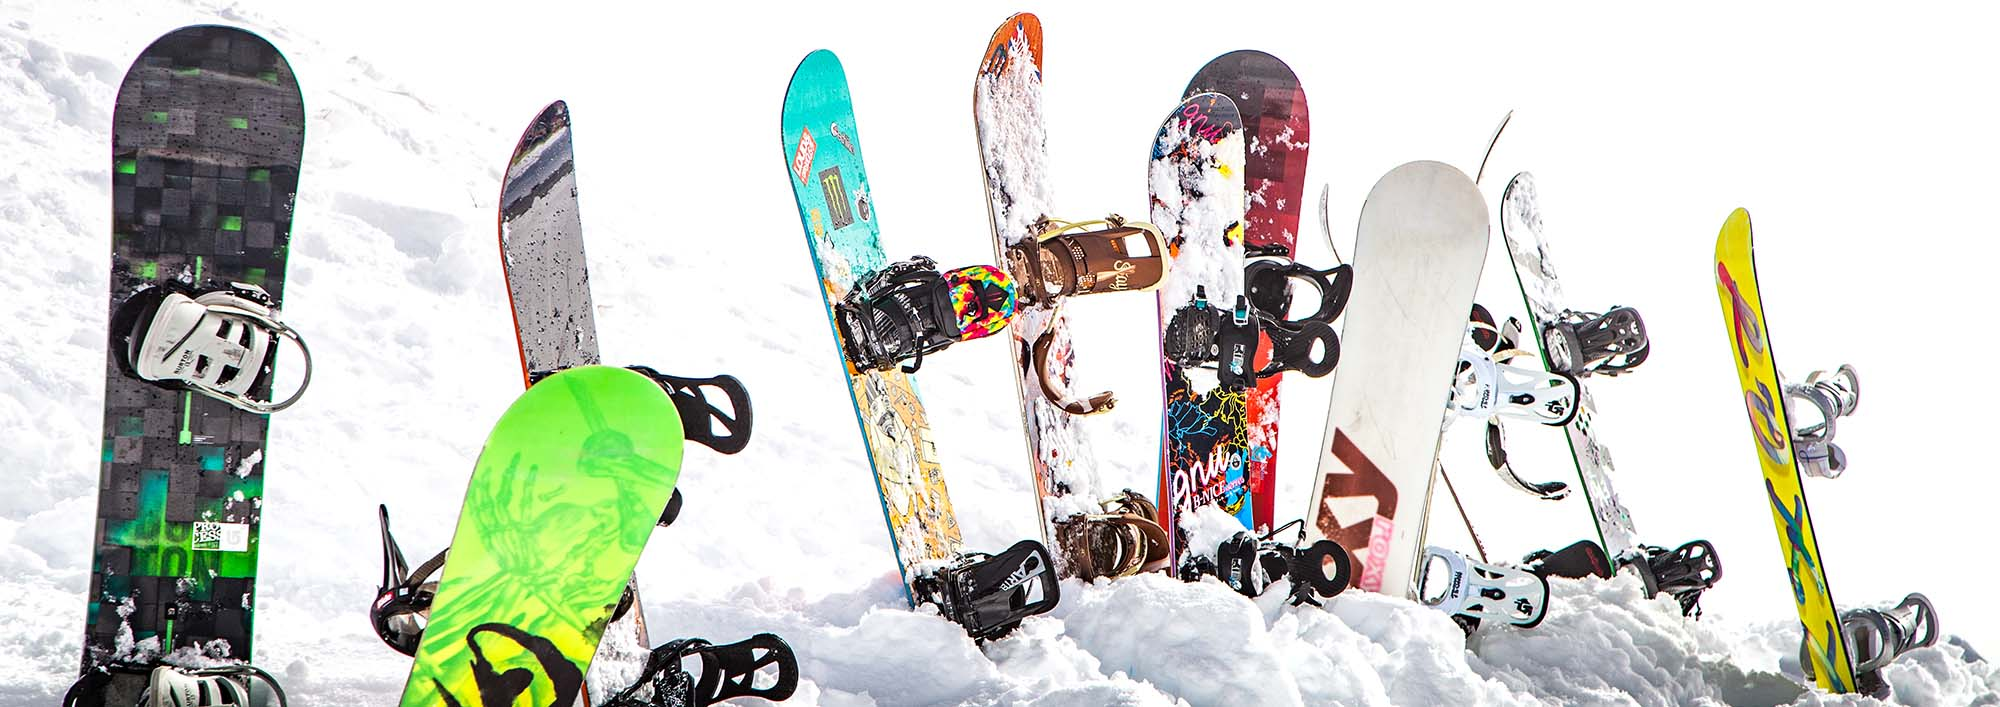 BBMR snowboards in the snow.